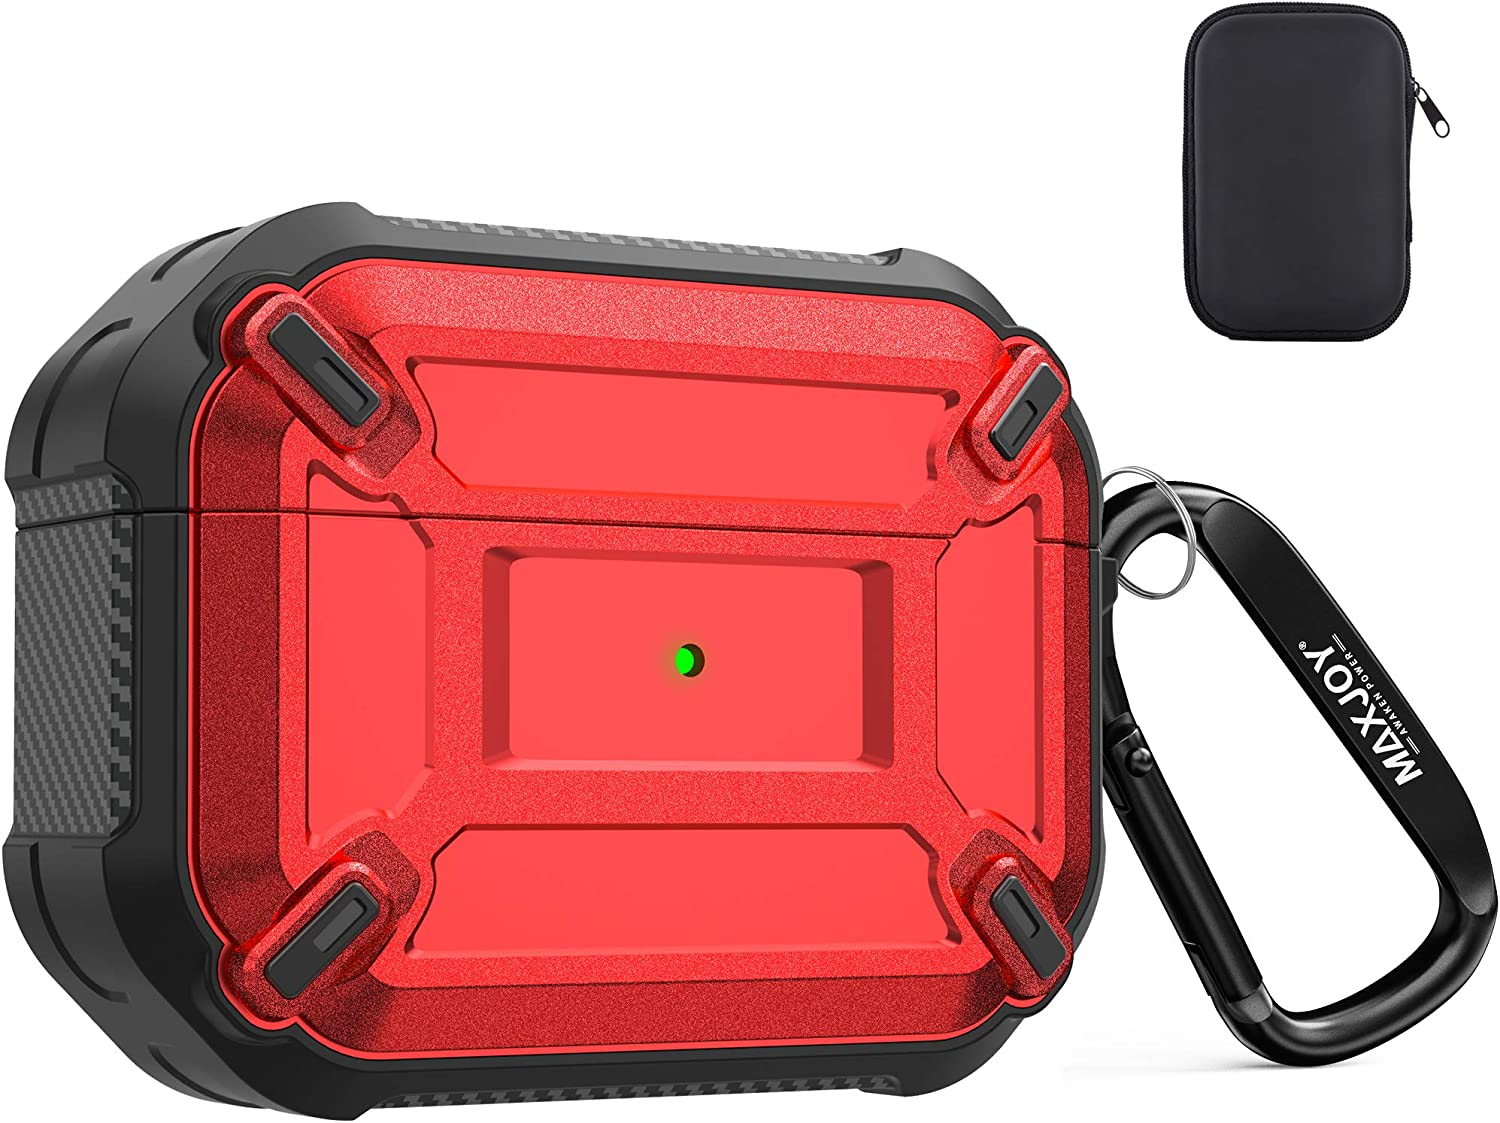 Maxjoy Compatible Airpods Pro Case Cover, Airpods Pro Protective Case Armor Hard Rugged Shockproof Cover with Keychain Compatible with Apple Airpods Pro Charging Case (Front LED Visible), Red